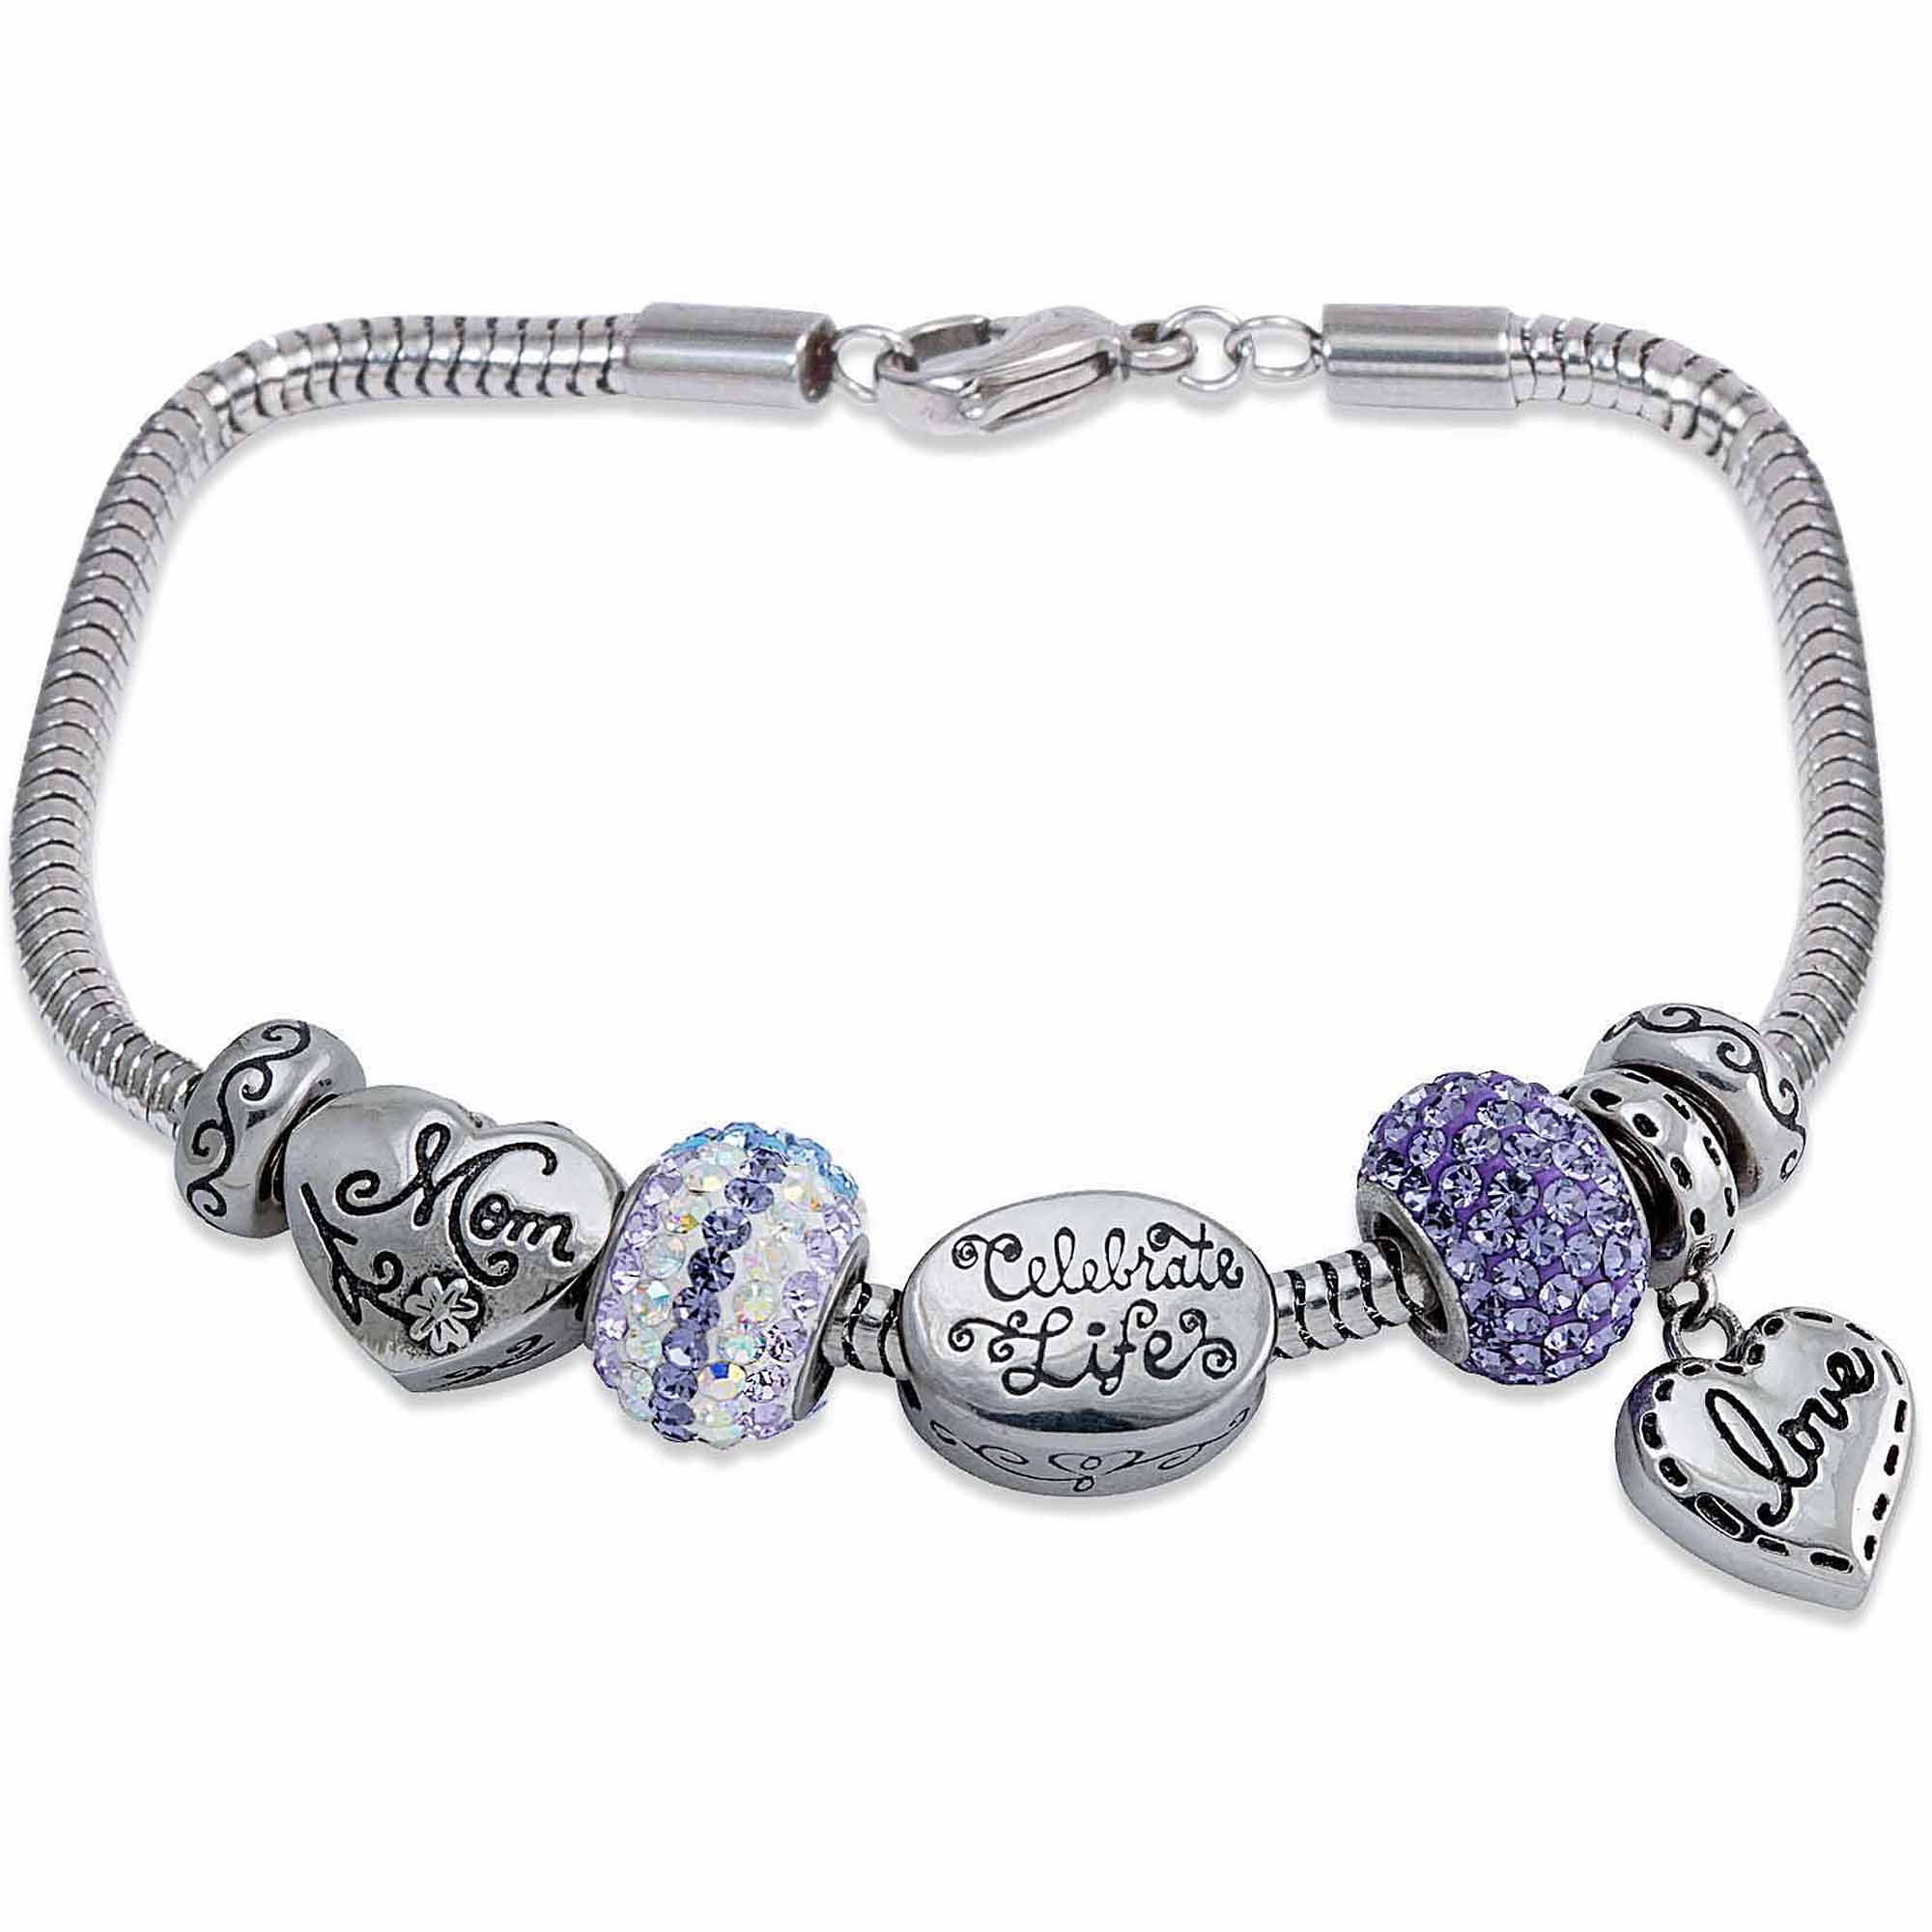 coffee bracelet charms pandora be there dsc might my bangle bangles